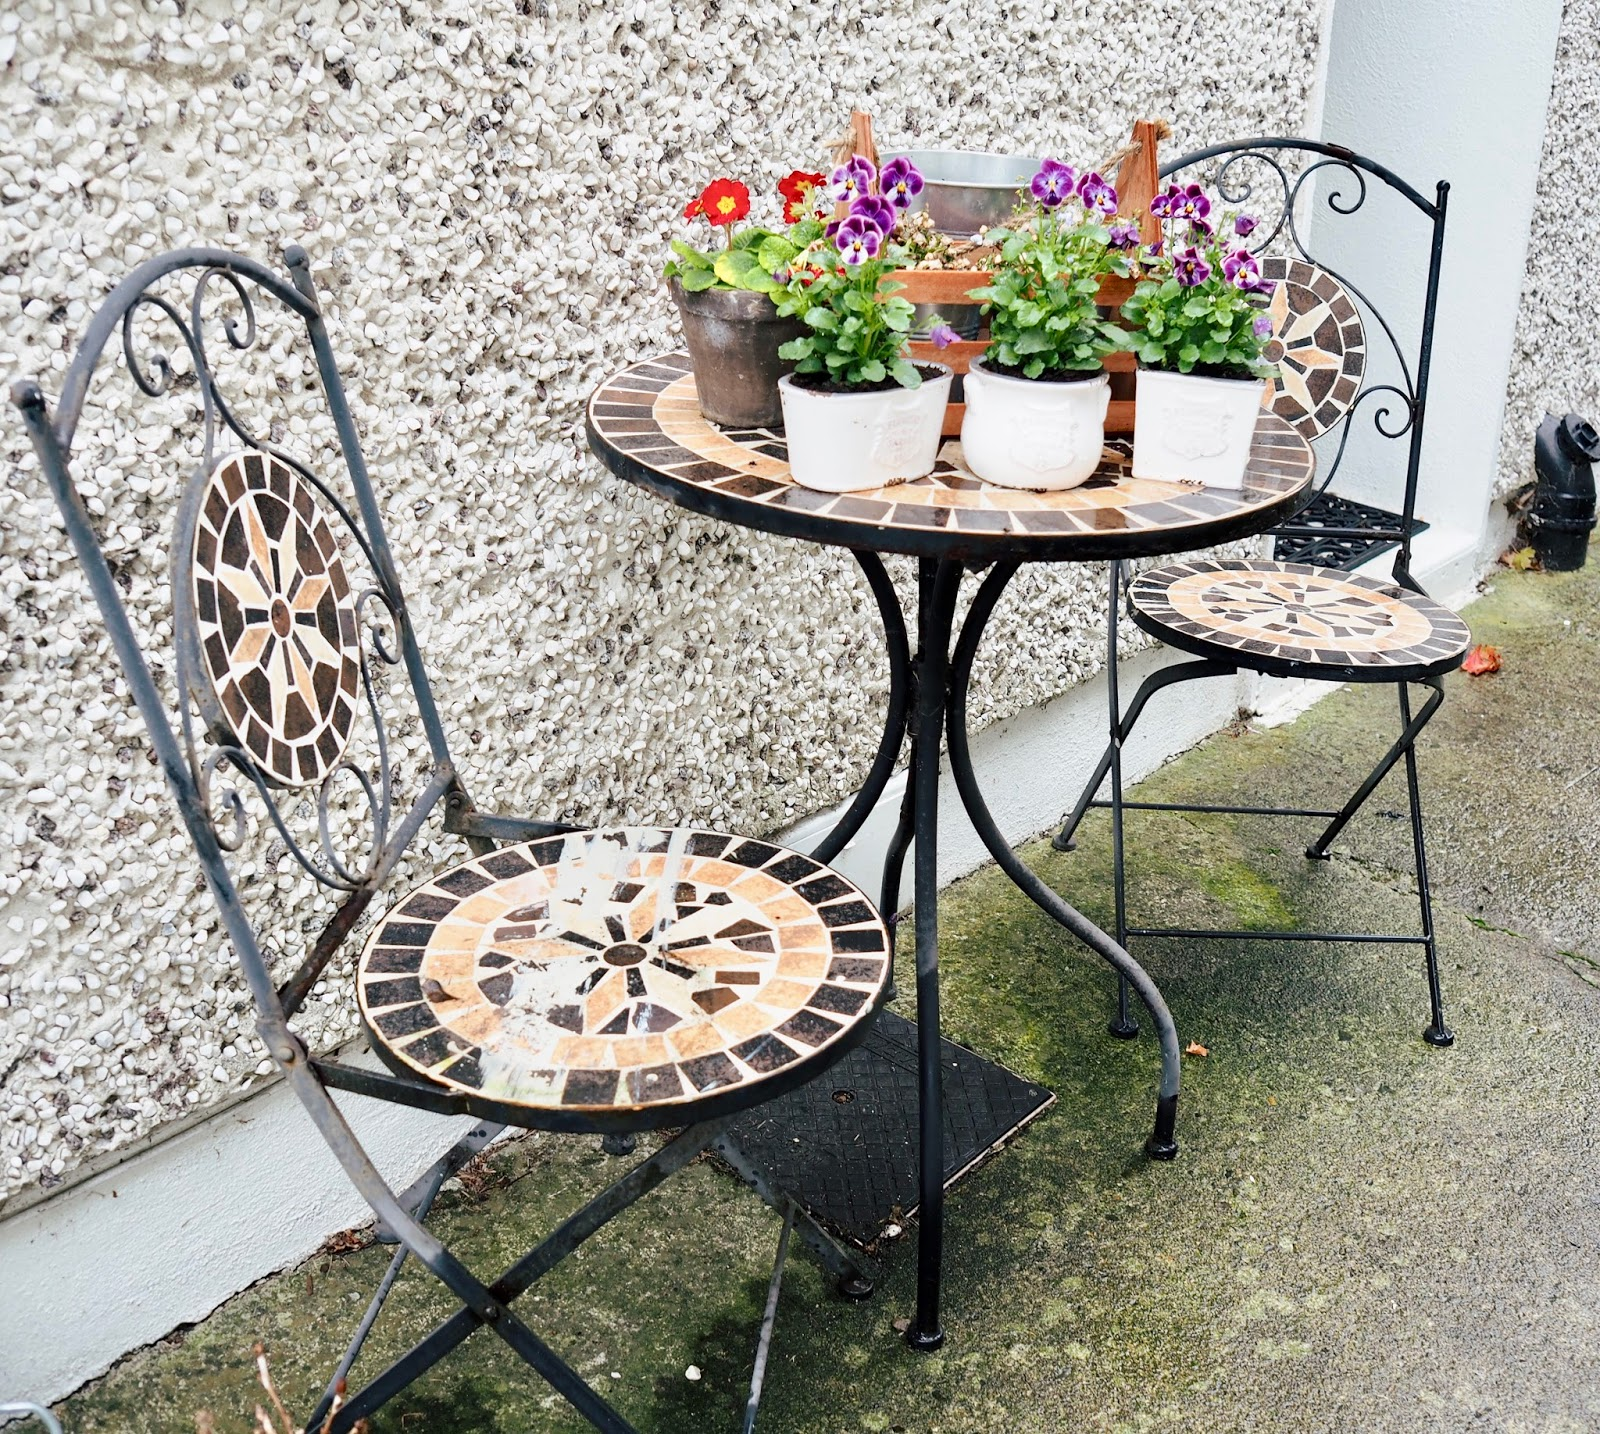 I wanted to make it look more like the little french bistro sets you would see outside a cute tea shop